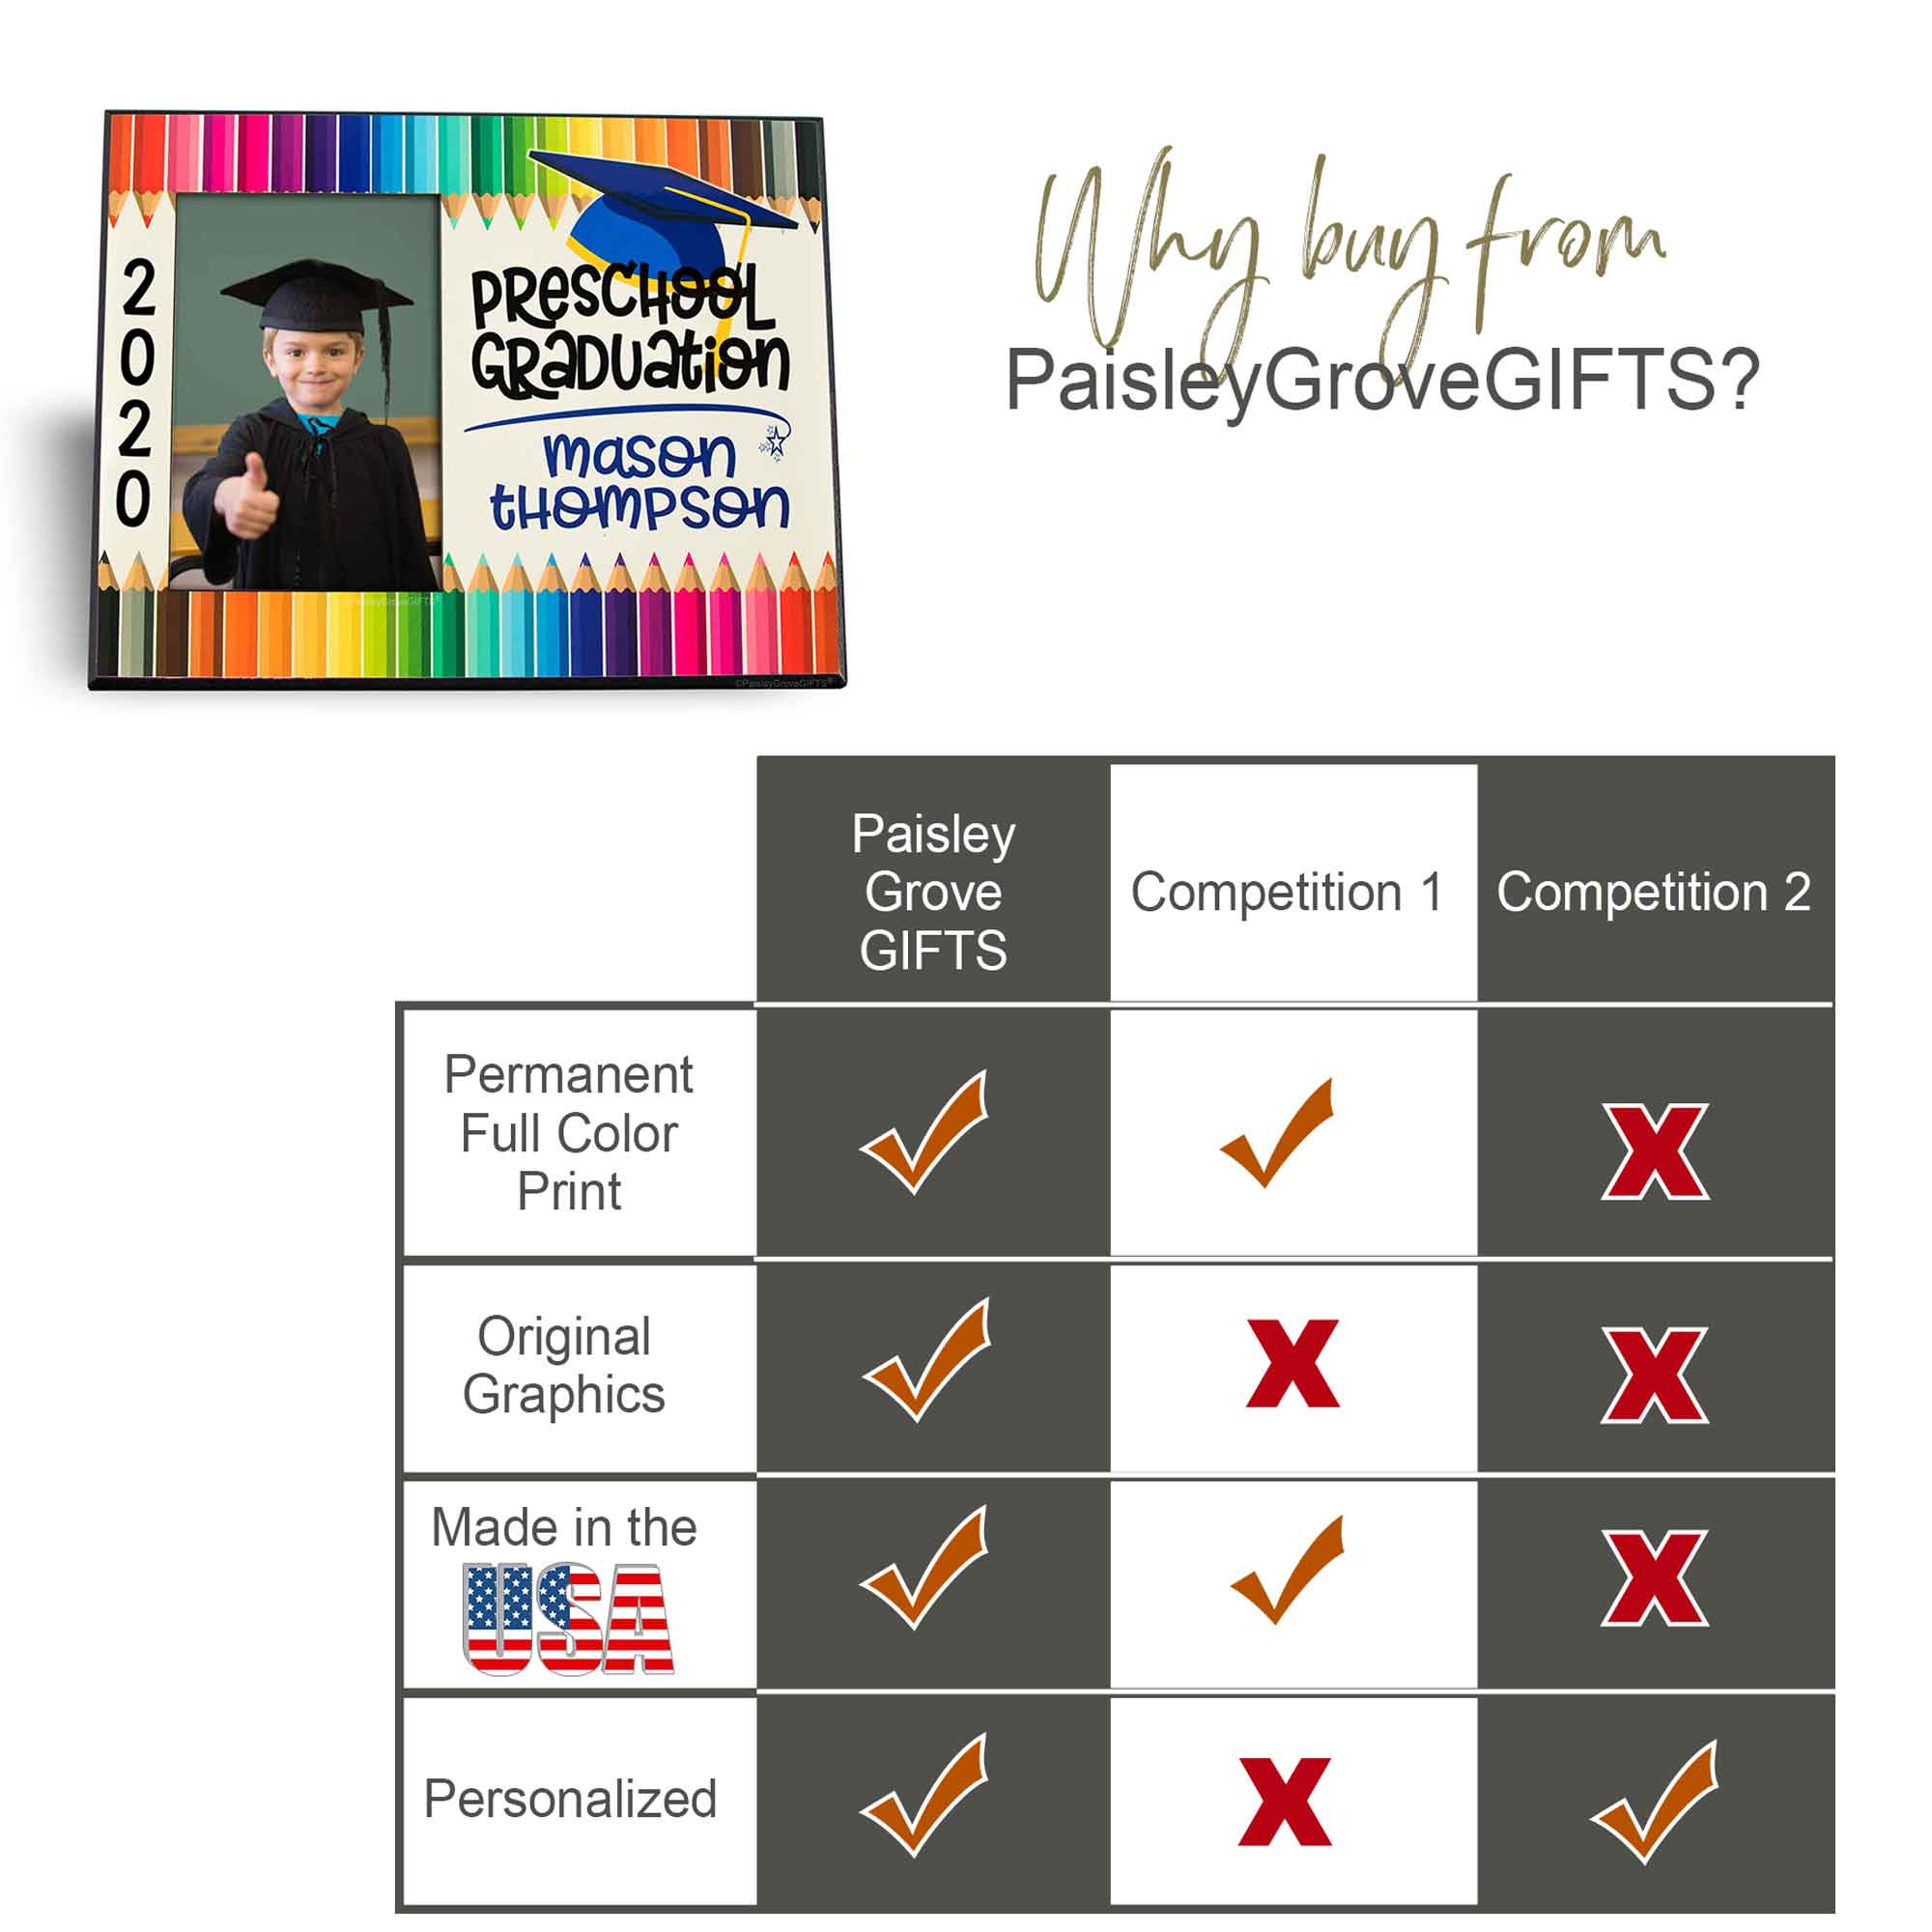 CopyrightPaisleyGroveGIFTS S228c Unique customized gift for preschool graduates, quality comparison chart